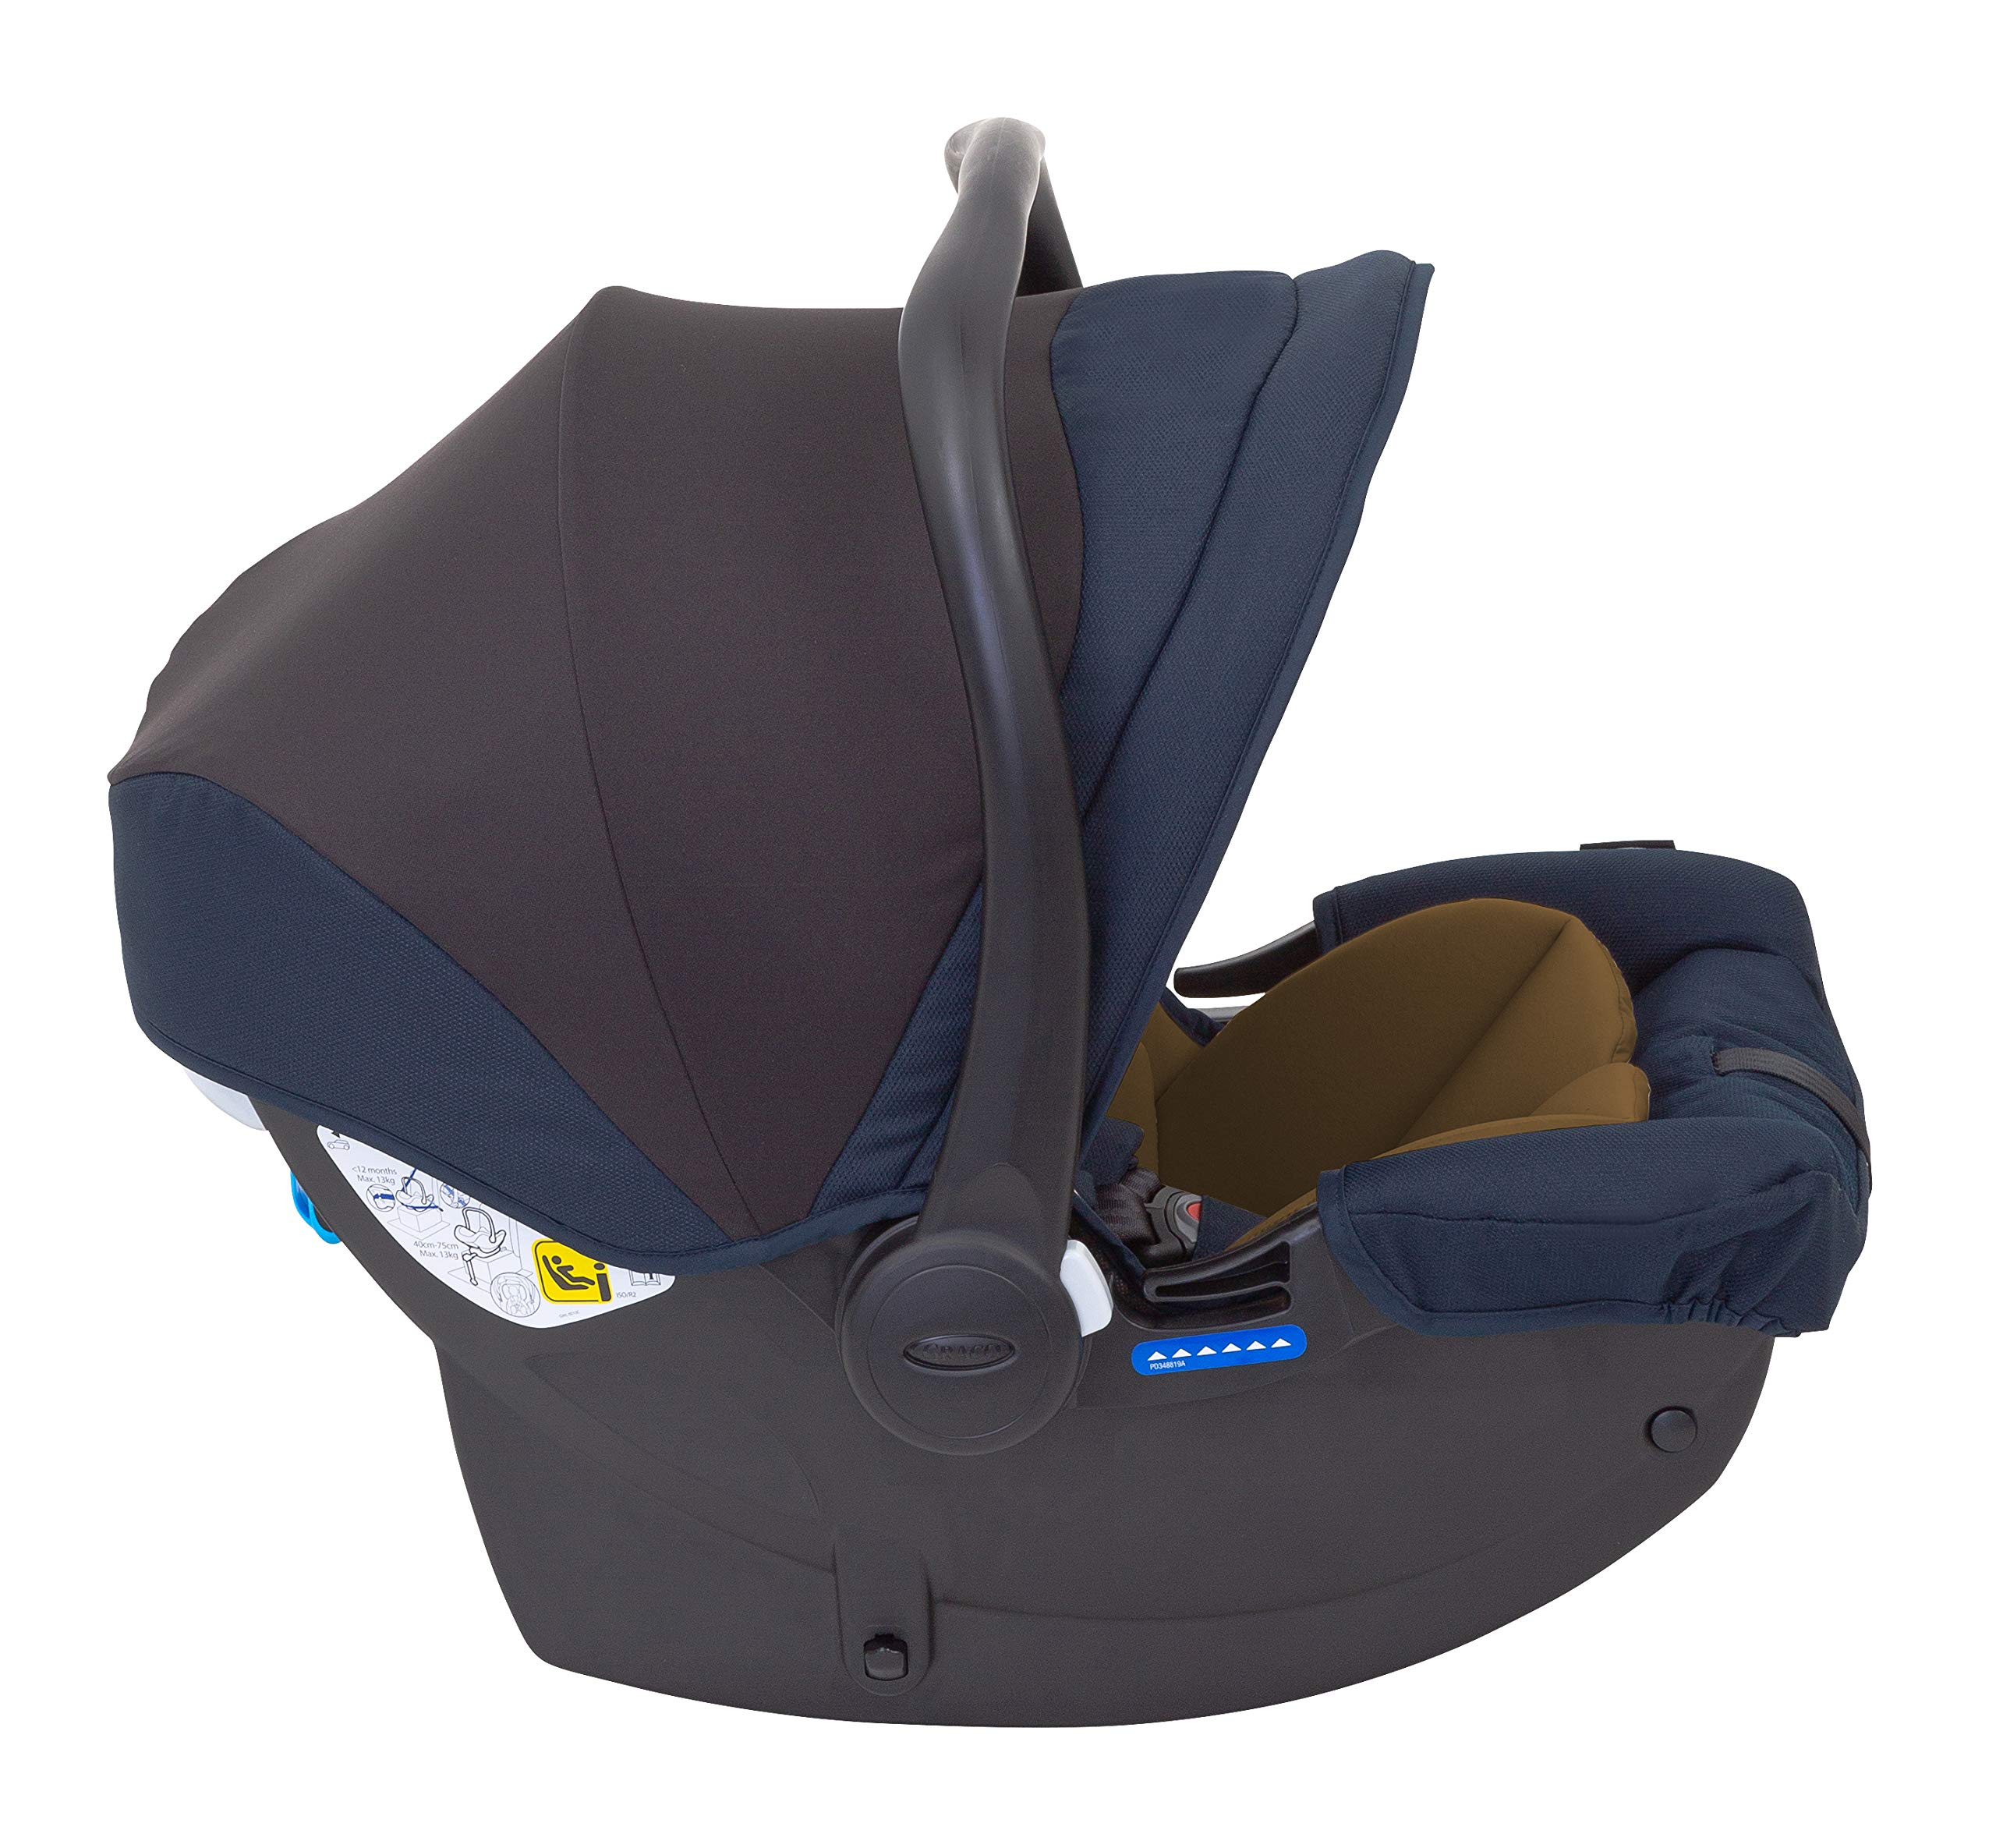 Graco Breaze Lite i-Size Travel System, Eclipse Graco From birth to 3 years approx. (0-15kg) Travel system package with snug essentials isize infant car seat included Lightweight stroller at only 6.5kg 7